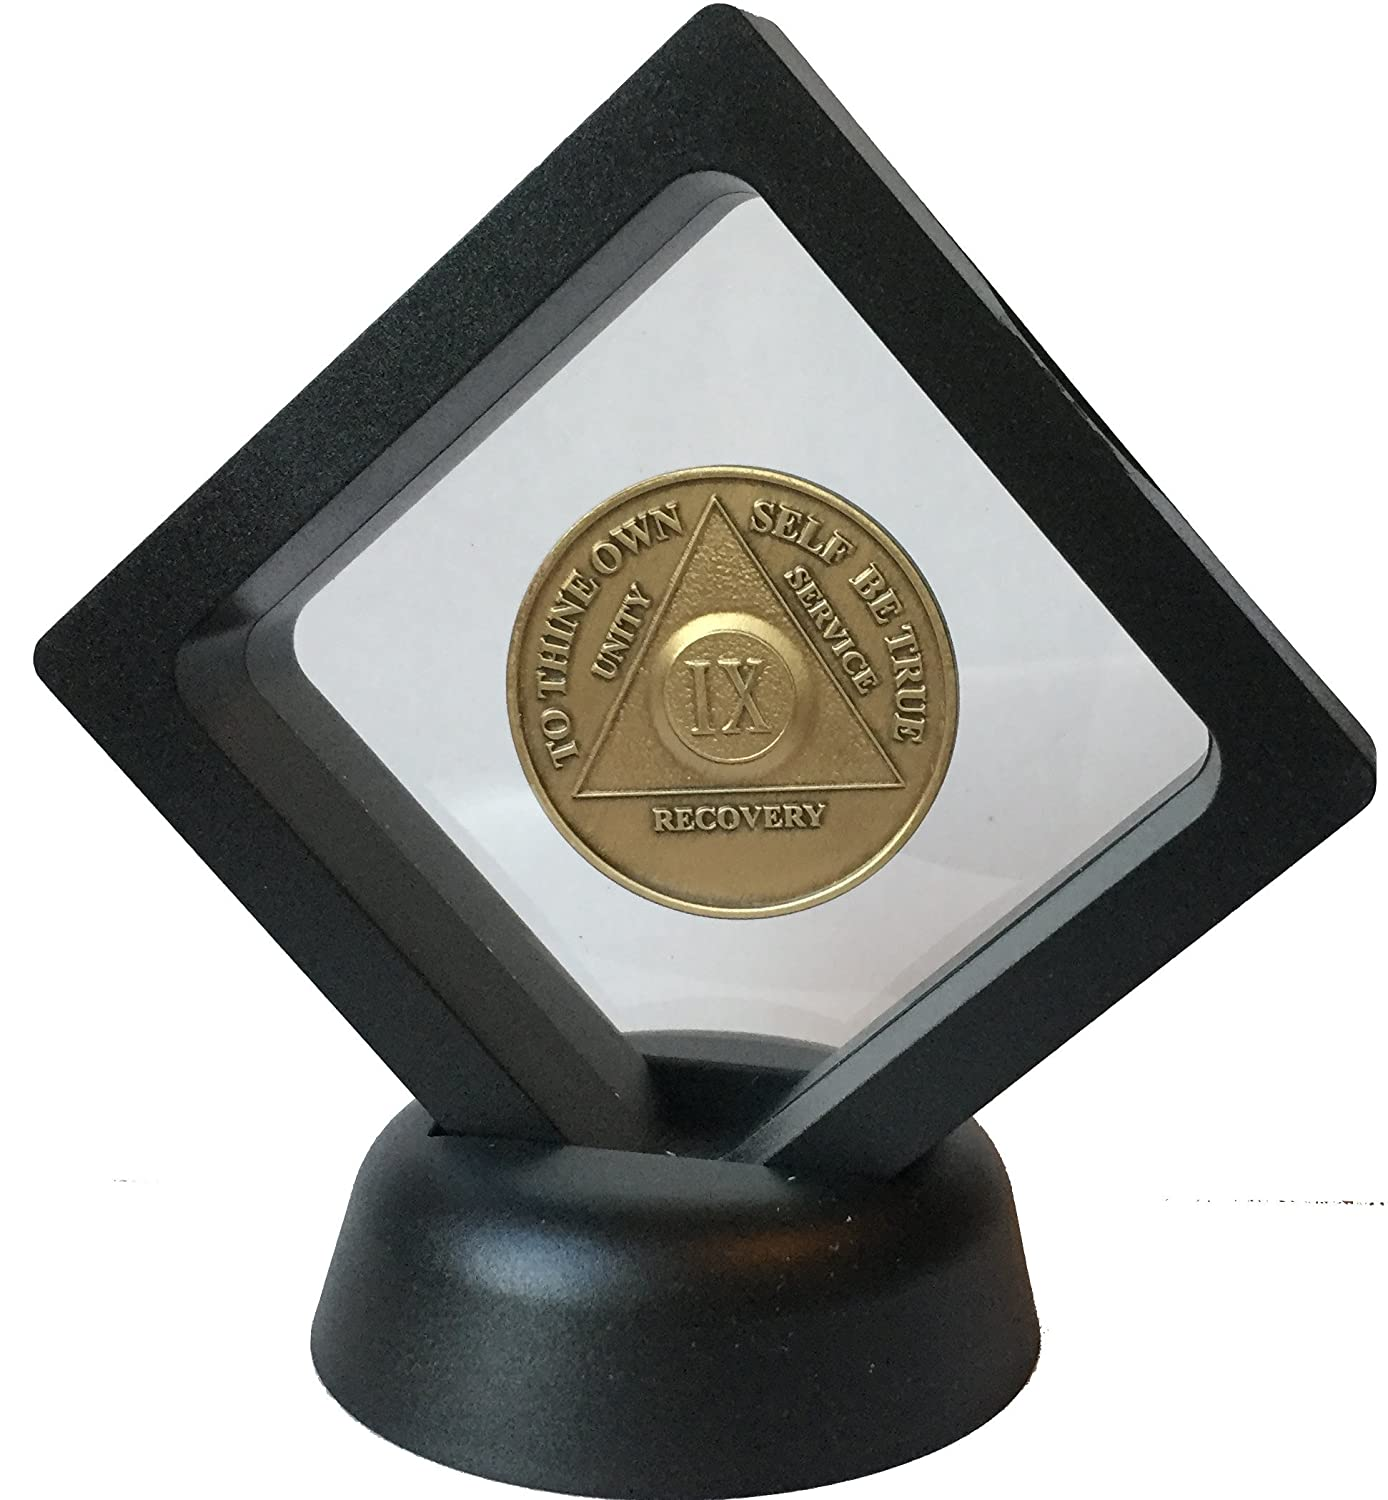 Black Diamond Square AA Medallion Challenge Coin Chip Display Stand Holder Magic Suspension Box Recoverychip